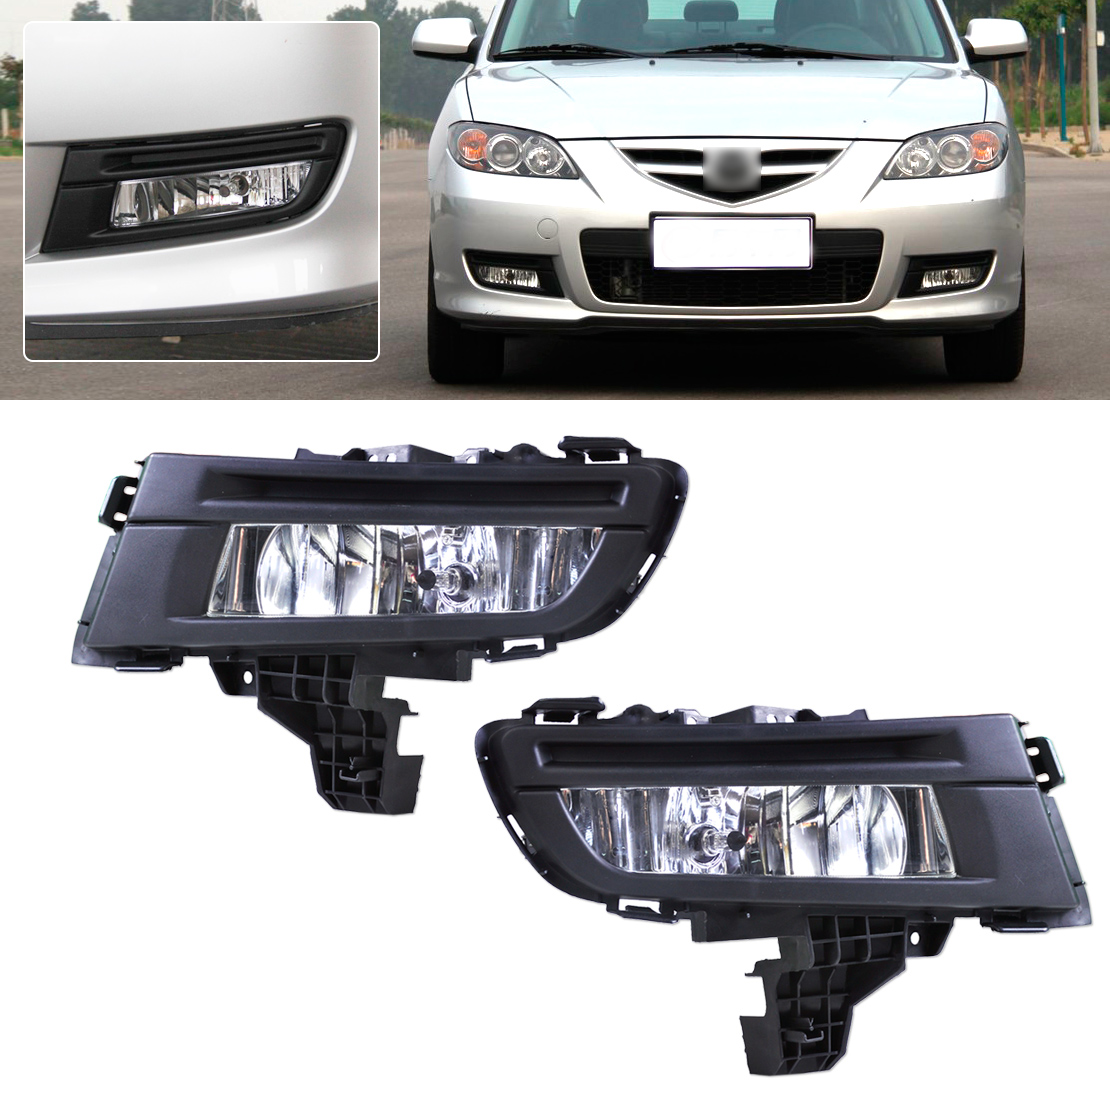 DWCX 1 Pair Front Right + Left Side Fog Light Lamp for Mazda 3 2007 2008 2009 Size approx. 29cm x 12cm for vw jetta 5 mk5 2006 2007 2008 2009 2010 2011 new front halogen fog lamp fog light with bulbs left and right